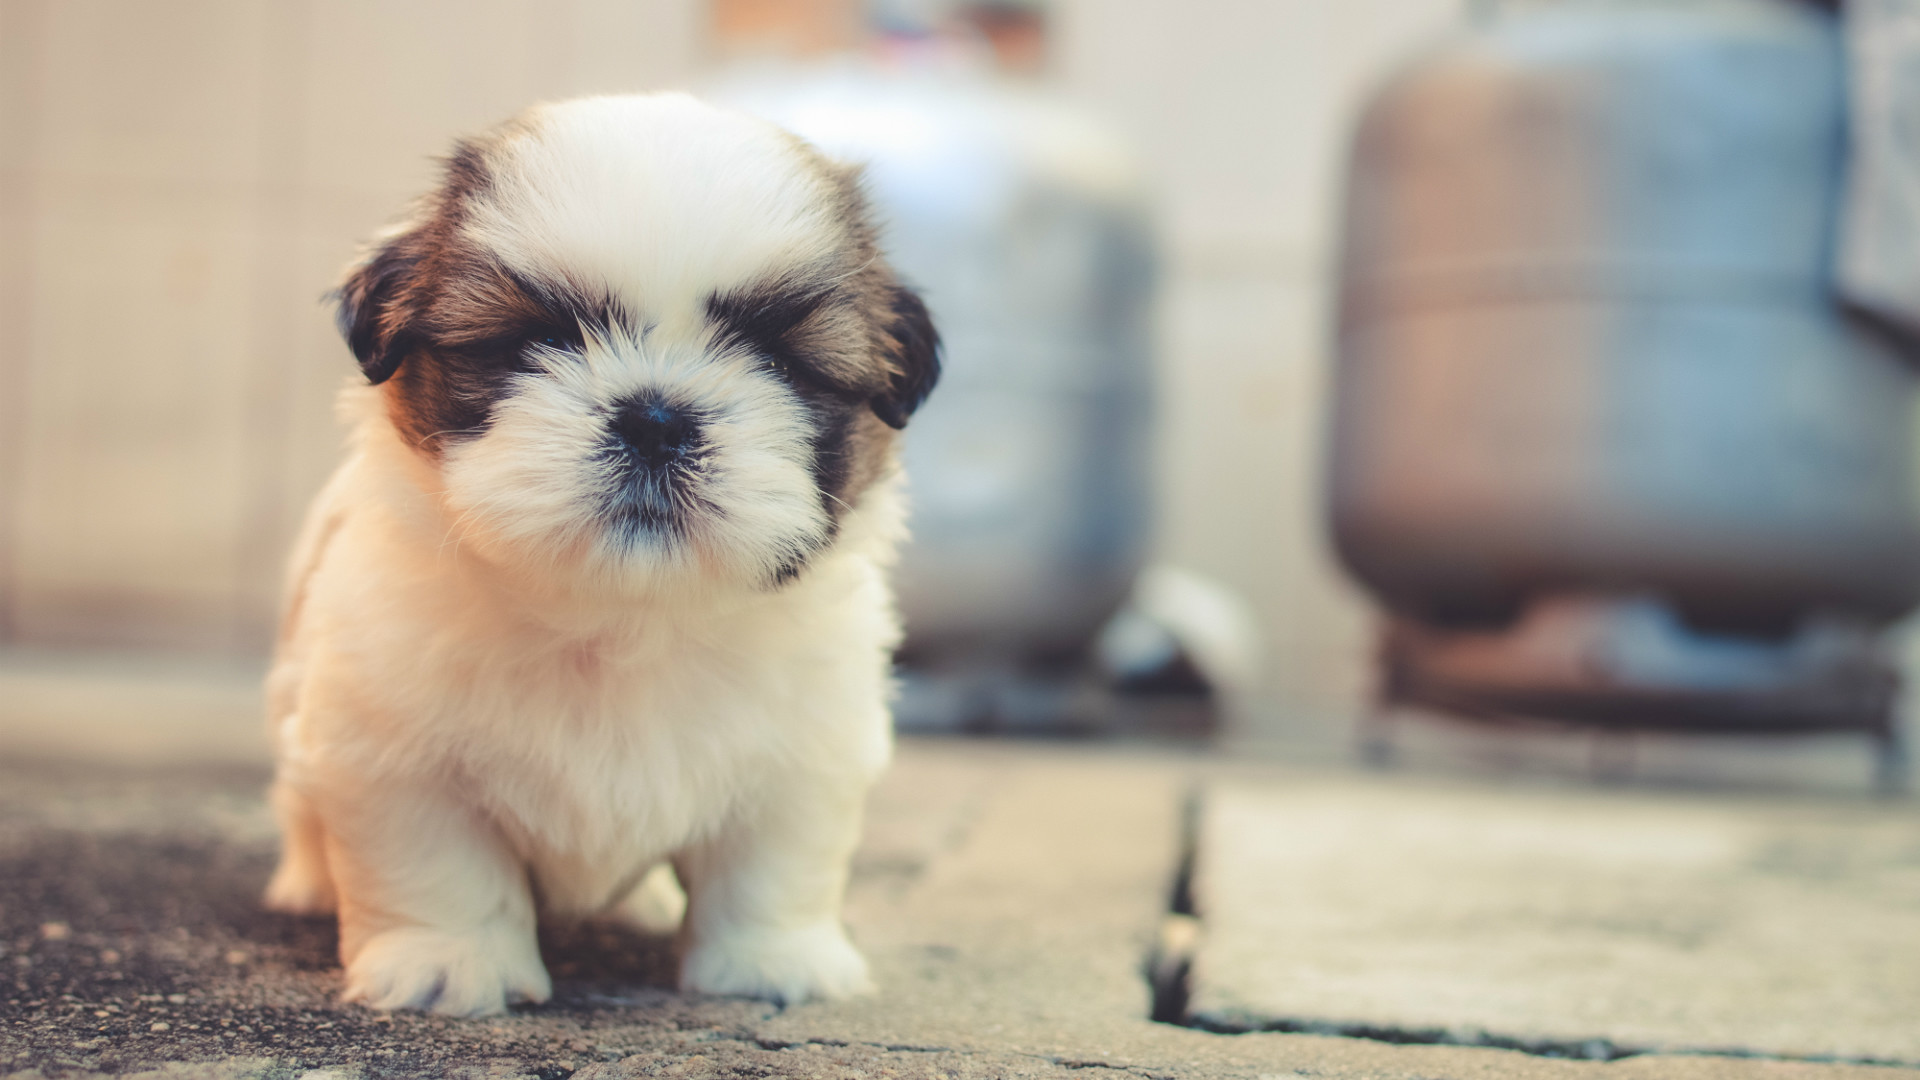 cute puppies wallpaper hd